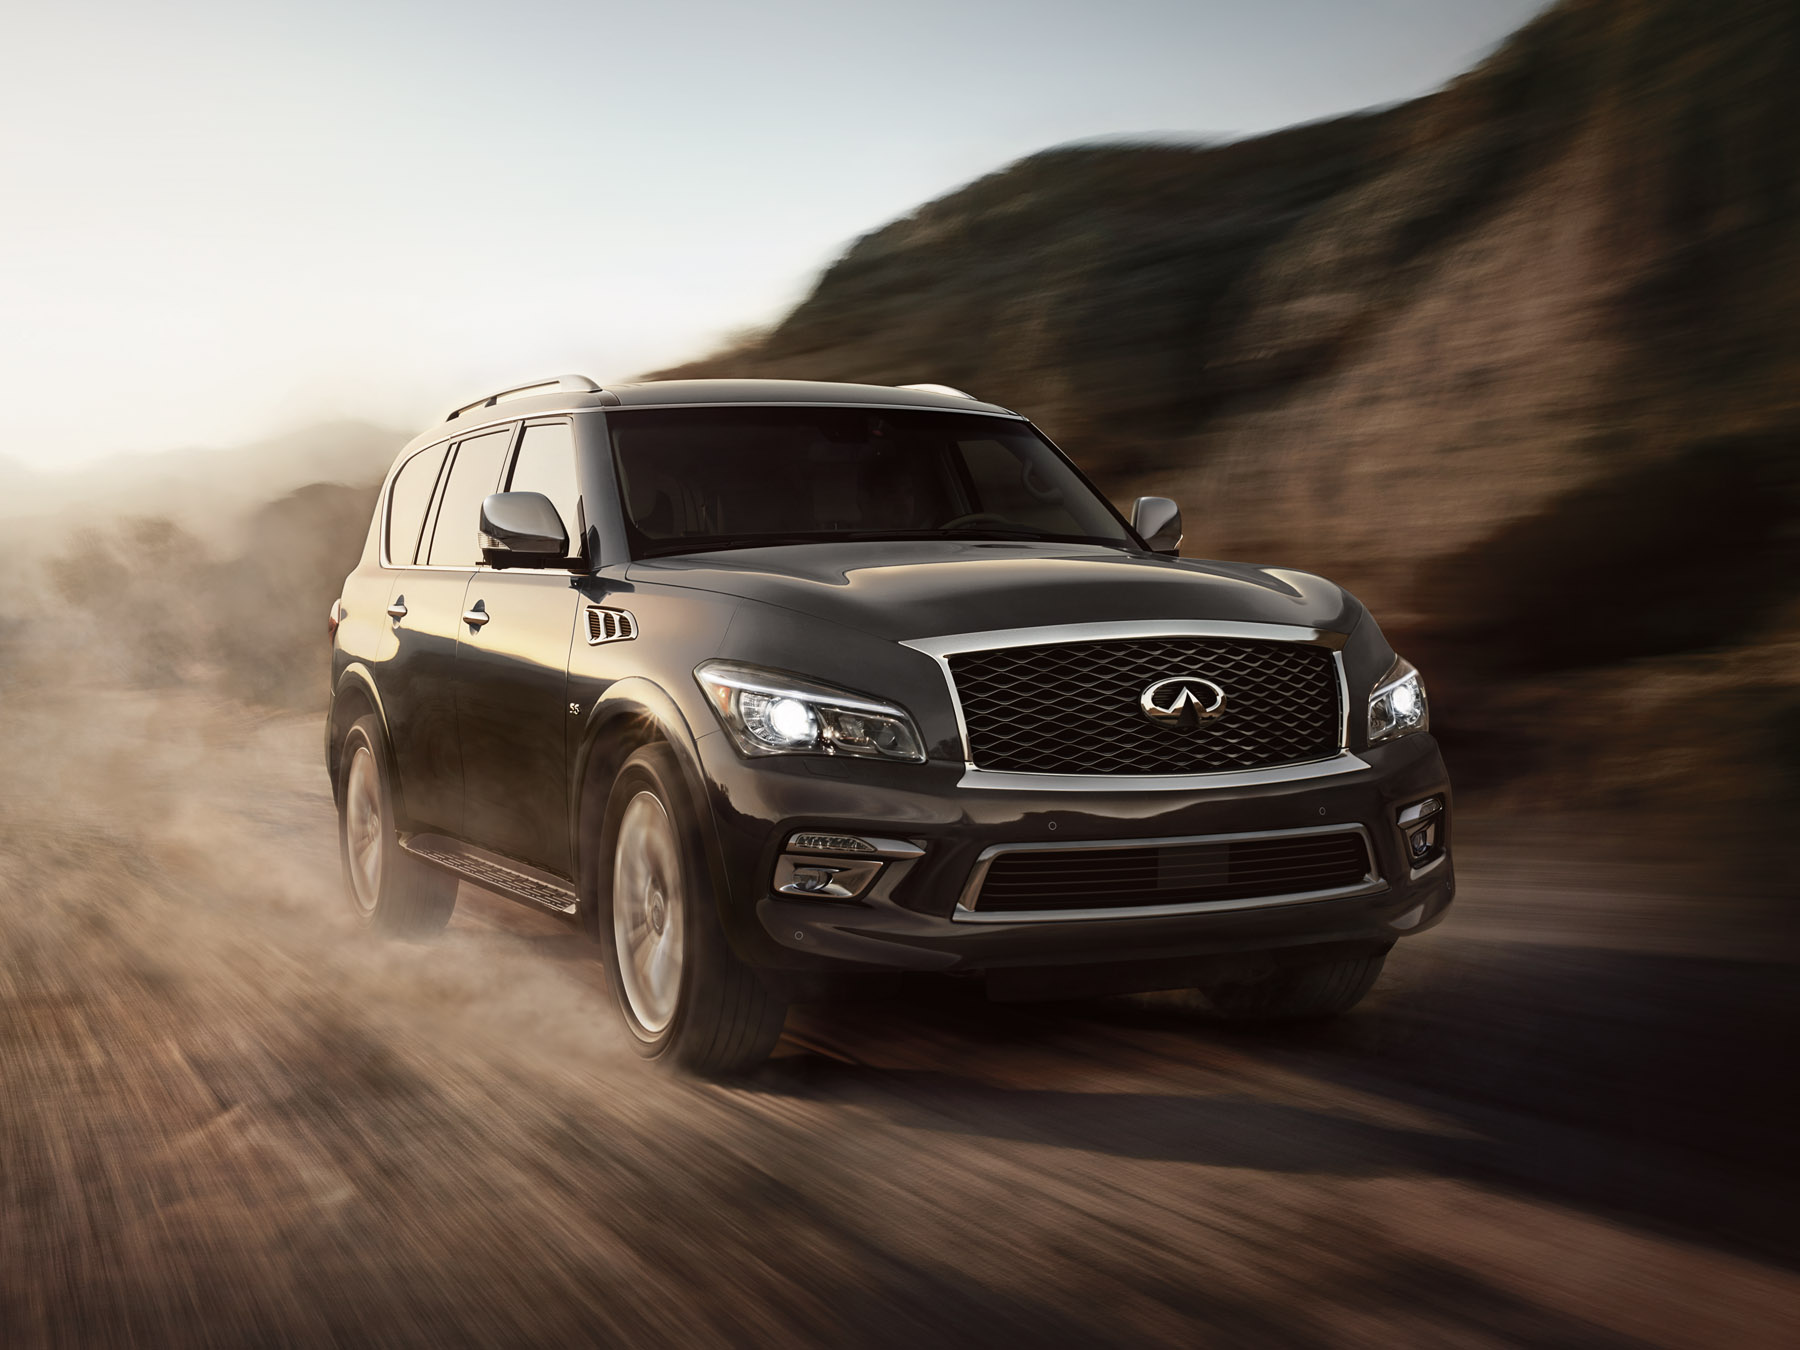 Black infiniti QX802 driving in the desert